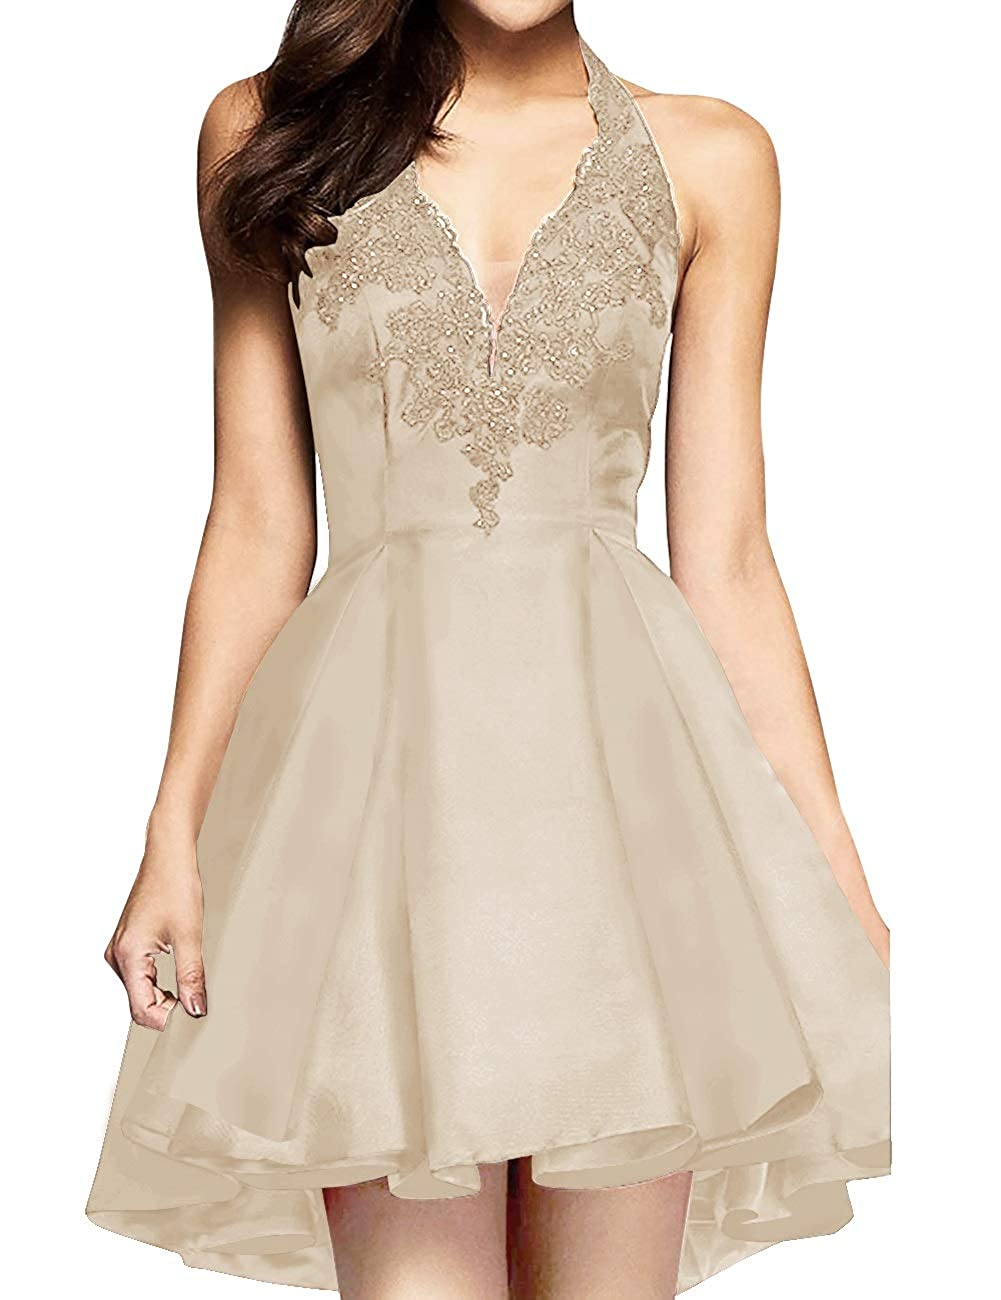 Champagne MorySong Women's Applique Lace Satin Halter Neck Short Homecoming Cocktail Dress